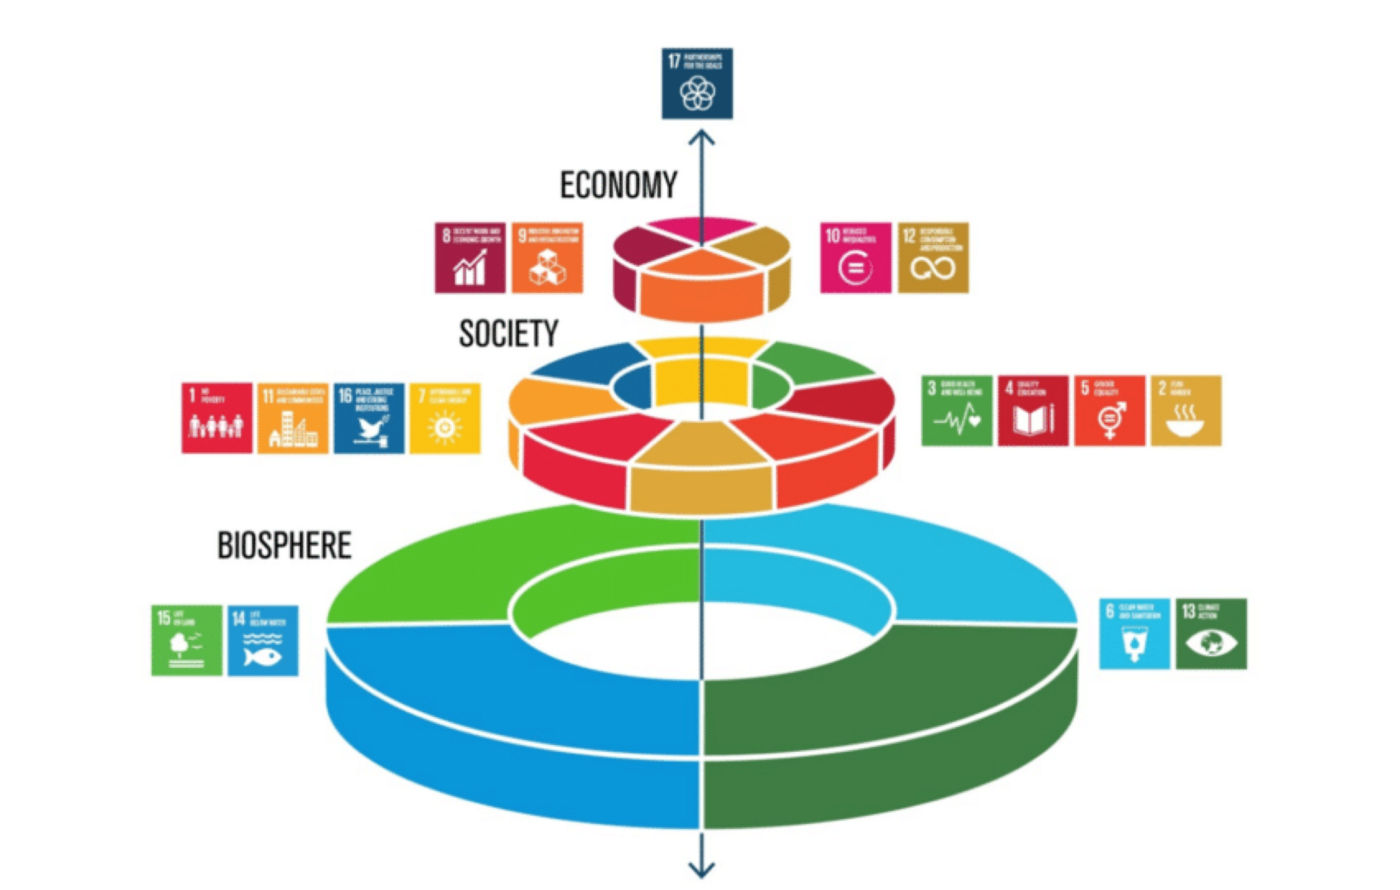 Multi-layered diagram of  17 SDGs across the biosphere, society and the economy